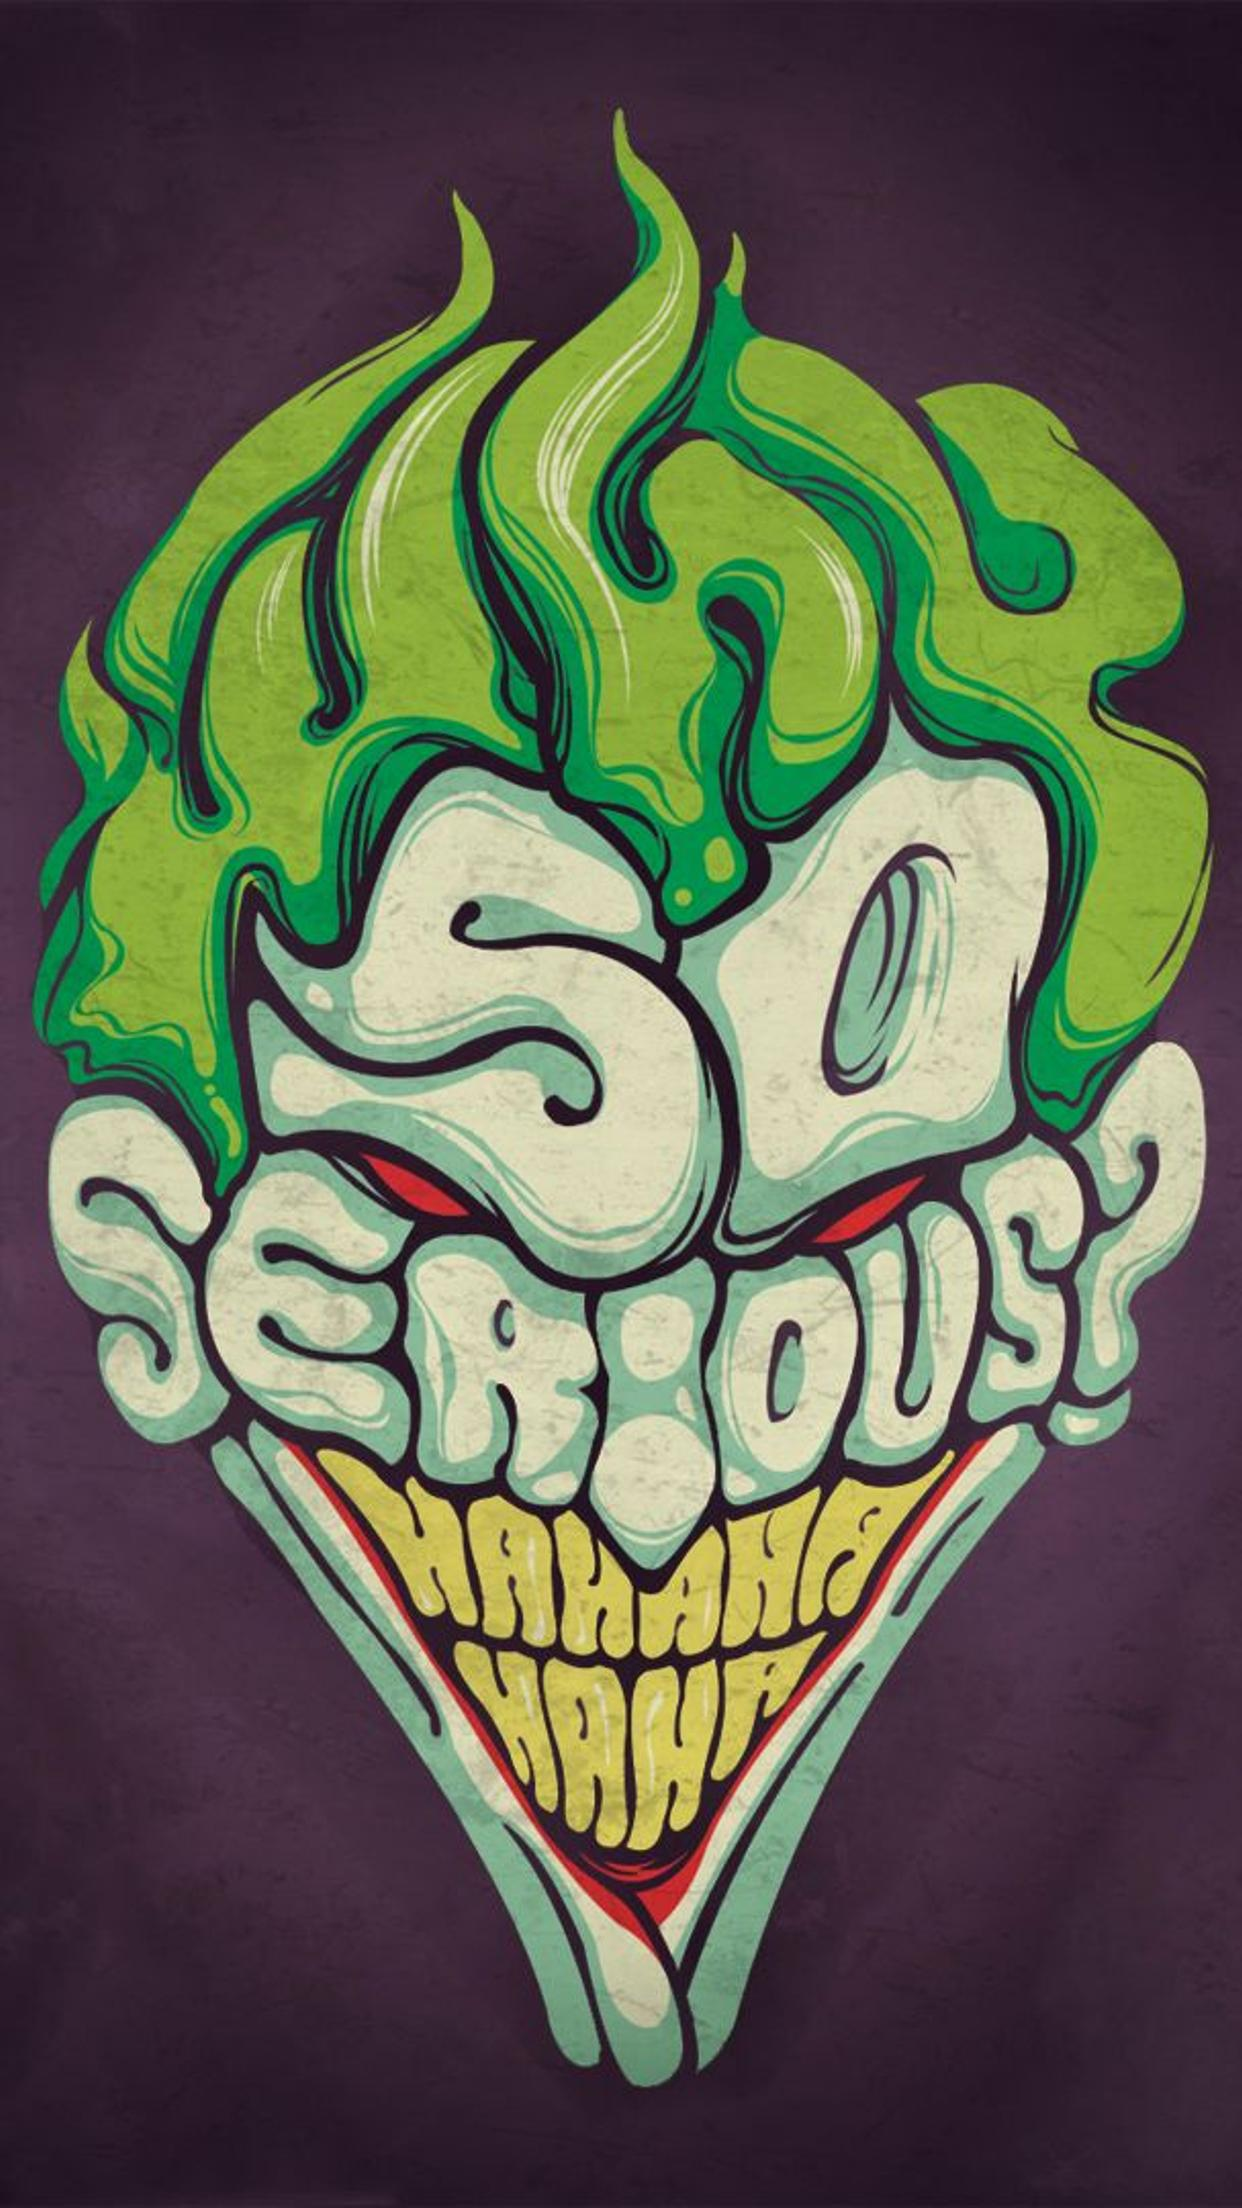 Why So Serious Wallpaper ✓ Wallpaper Directory